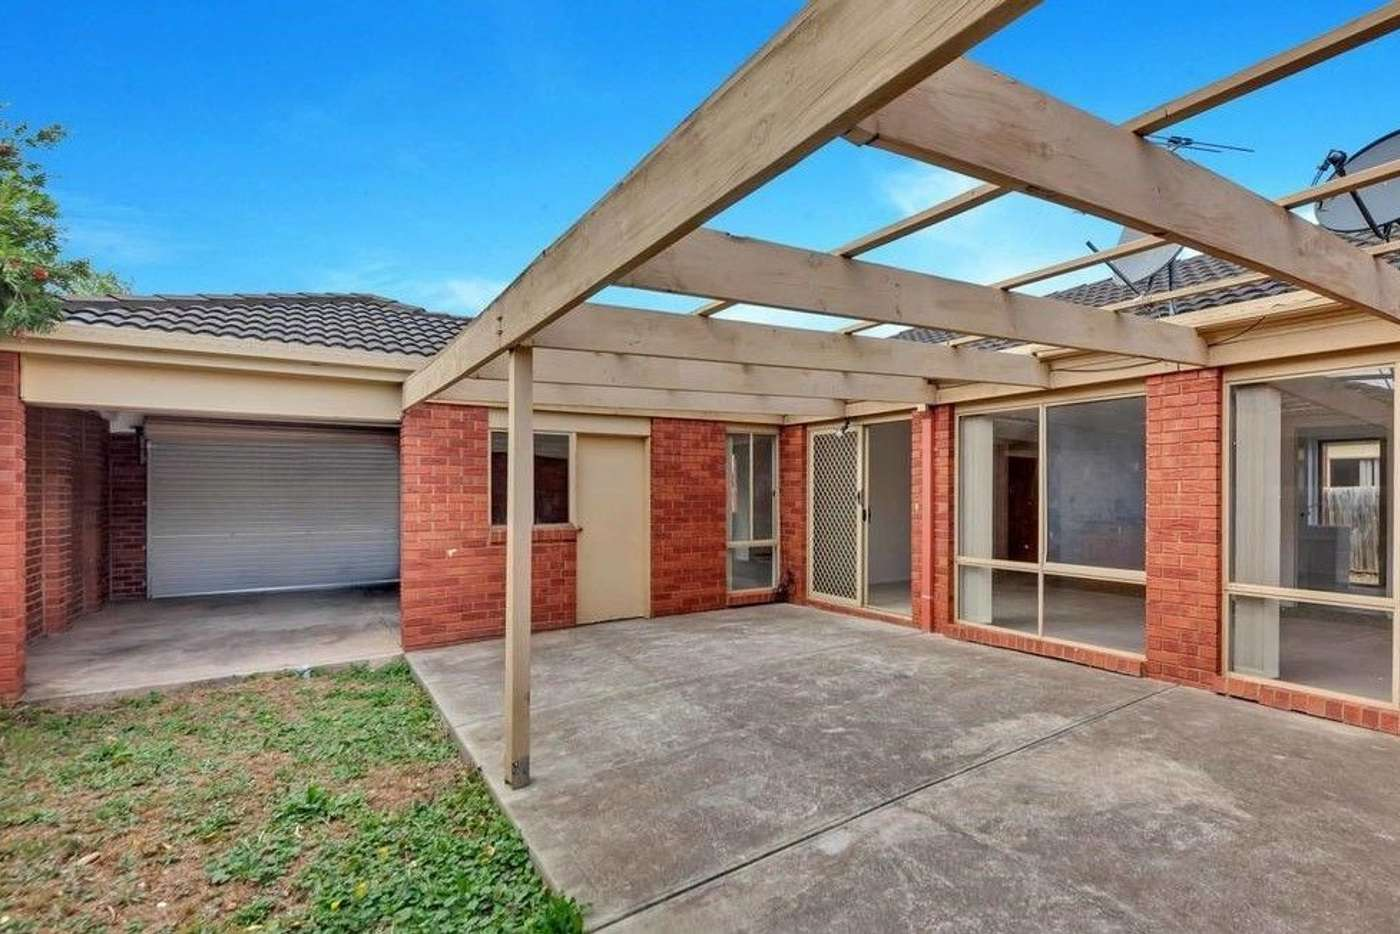 Seventh view of Homely house listing, 3 Breton Drive, Hoppers Crossing VIC 3029